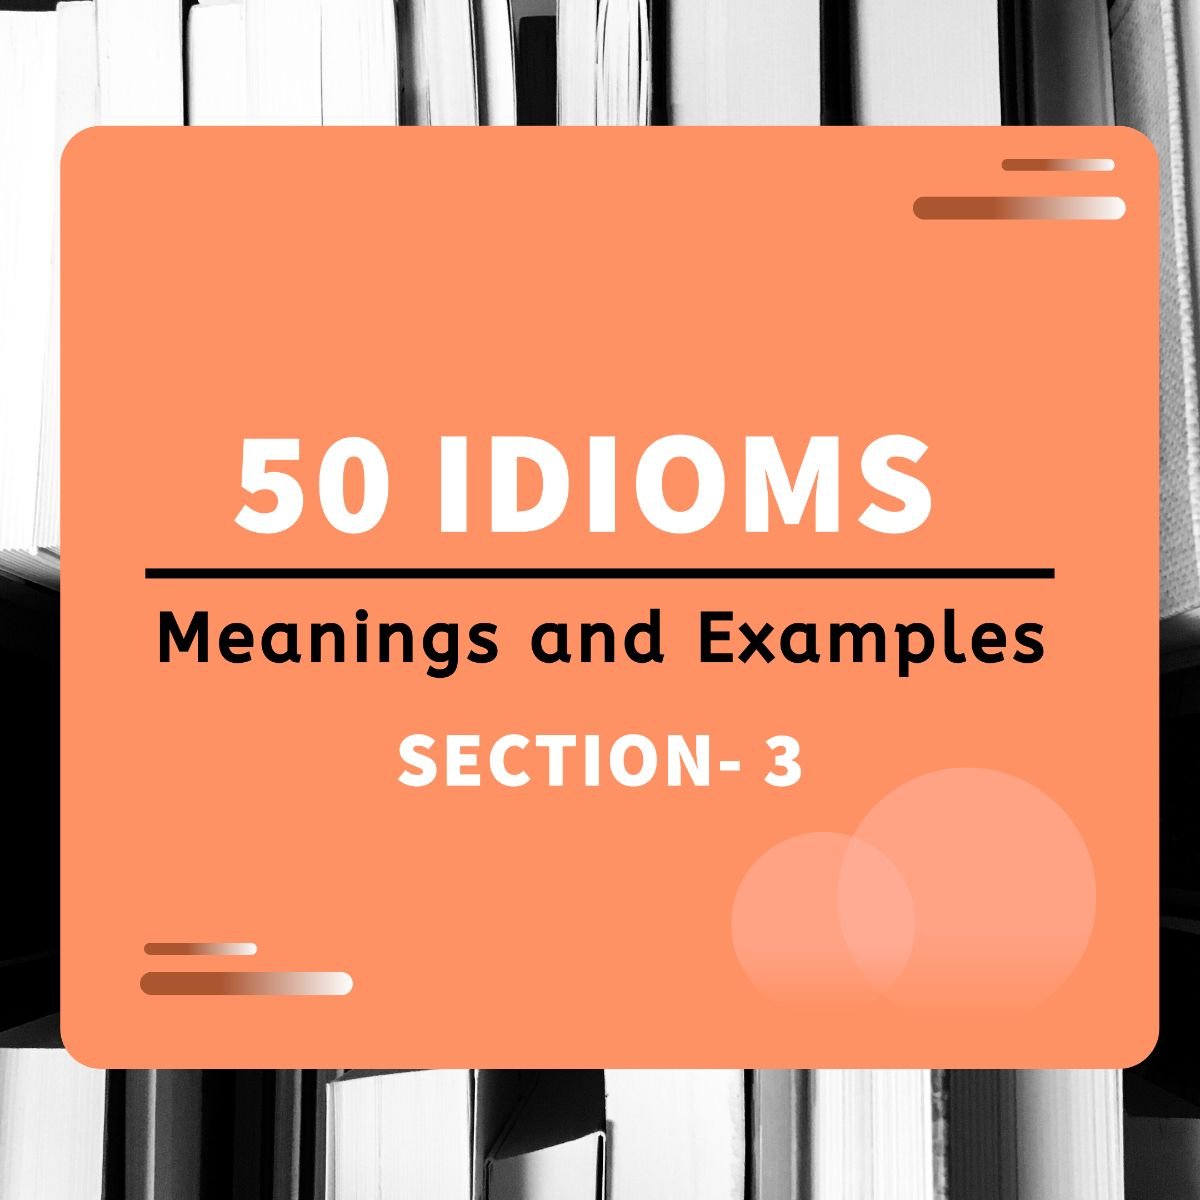 Idioms, meanings and their sentences - Section 3